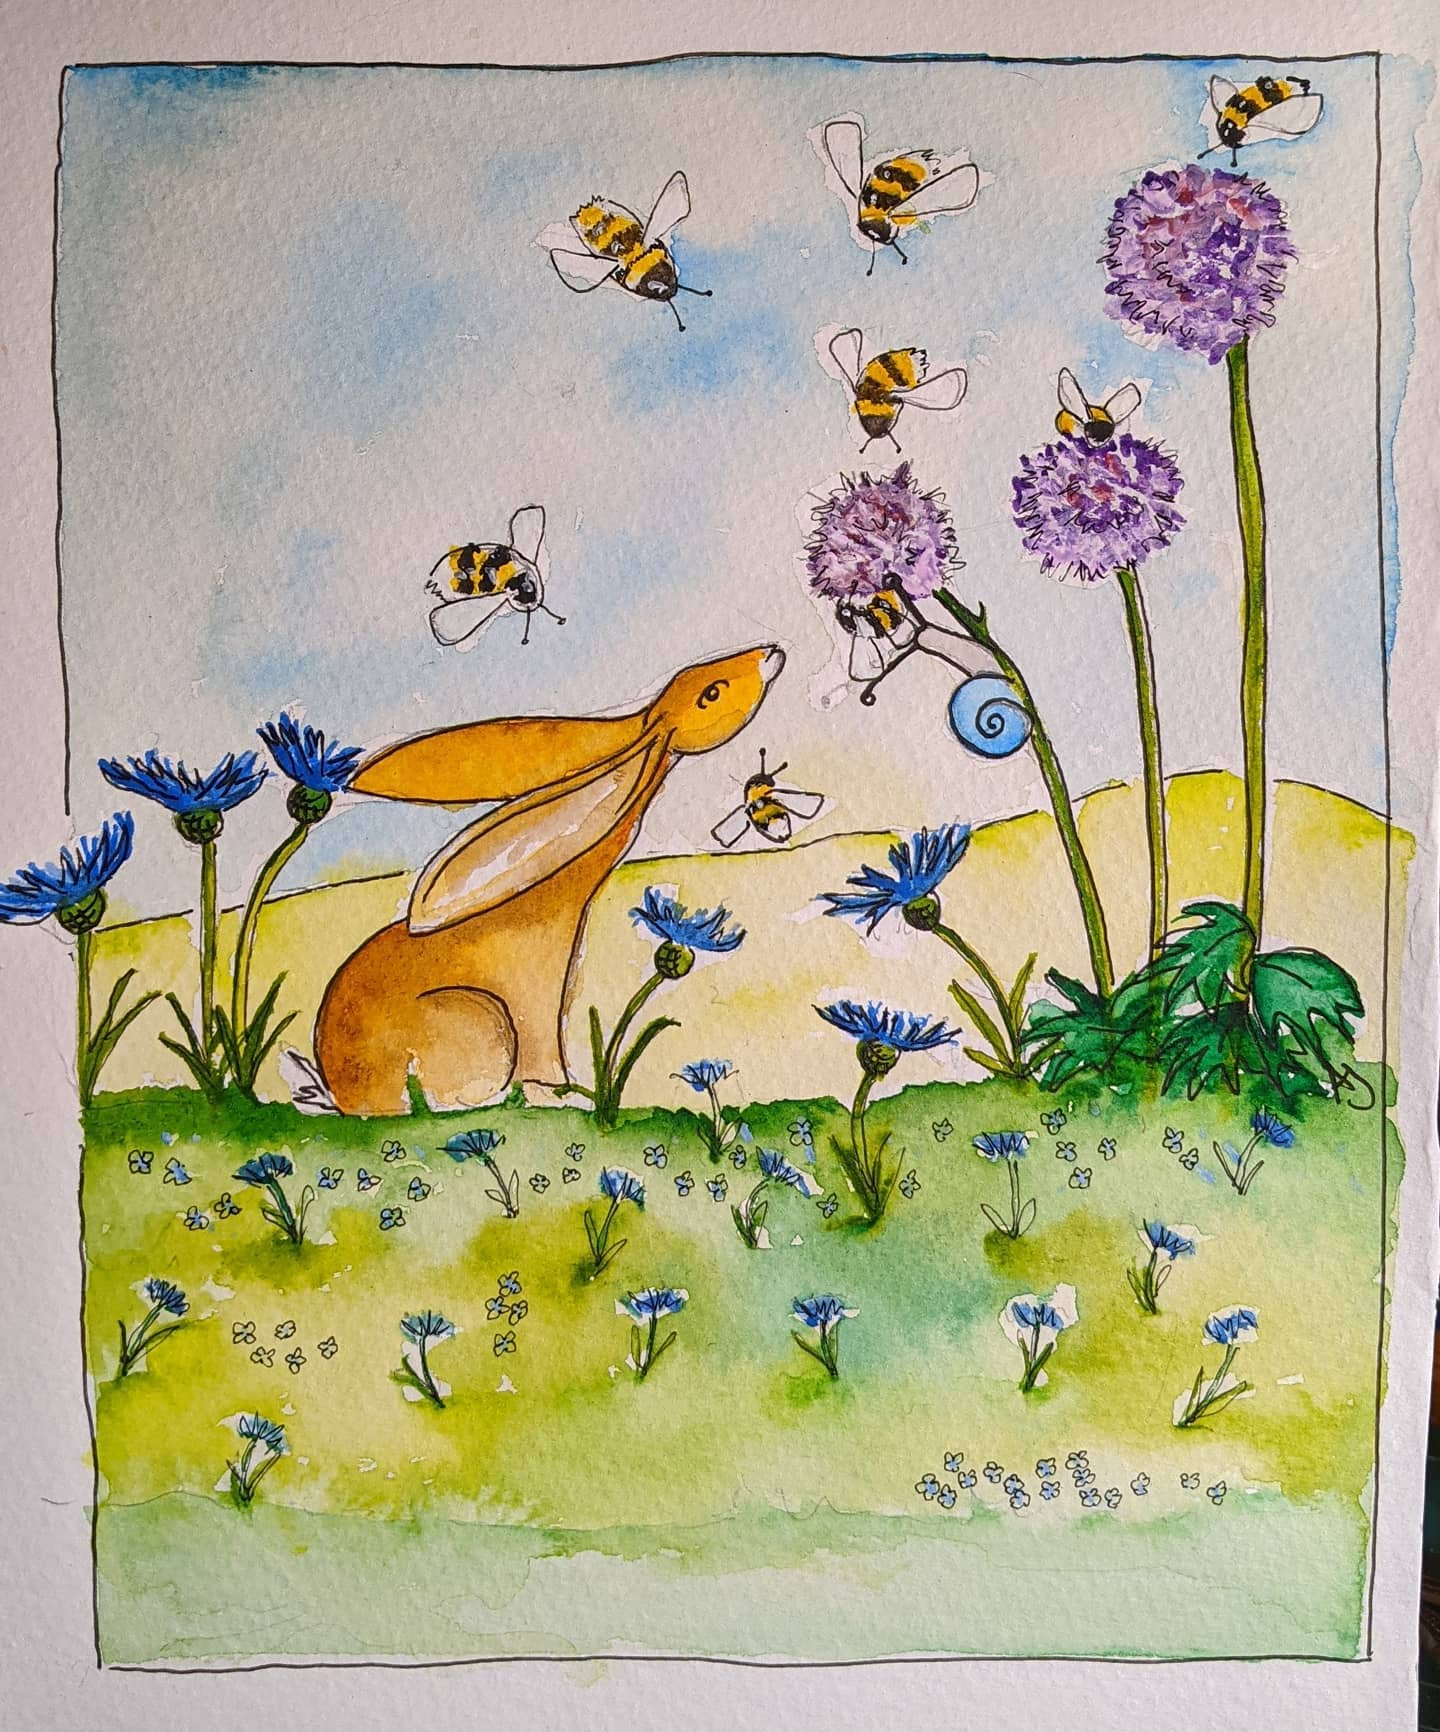 Hare and Snail Commission